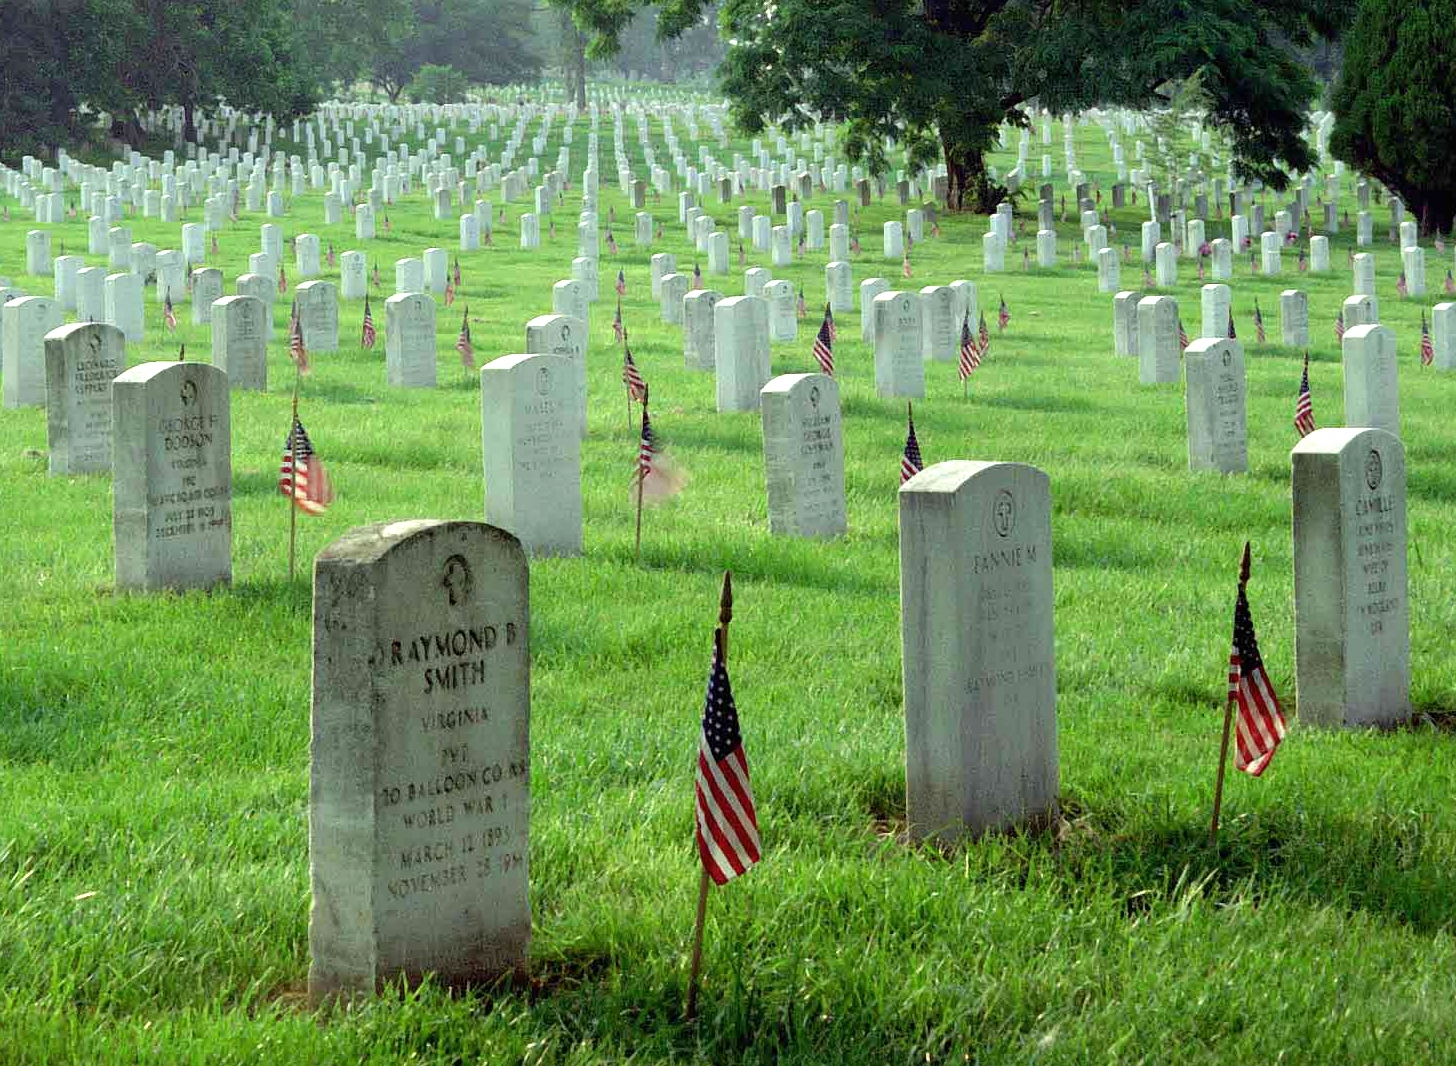 pictures of gravestones at Arlington with US flags for Memorial Day